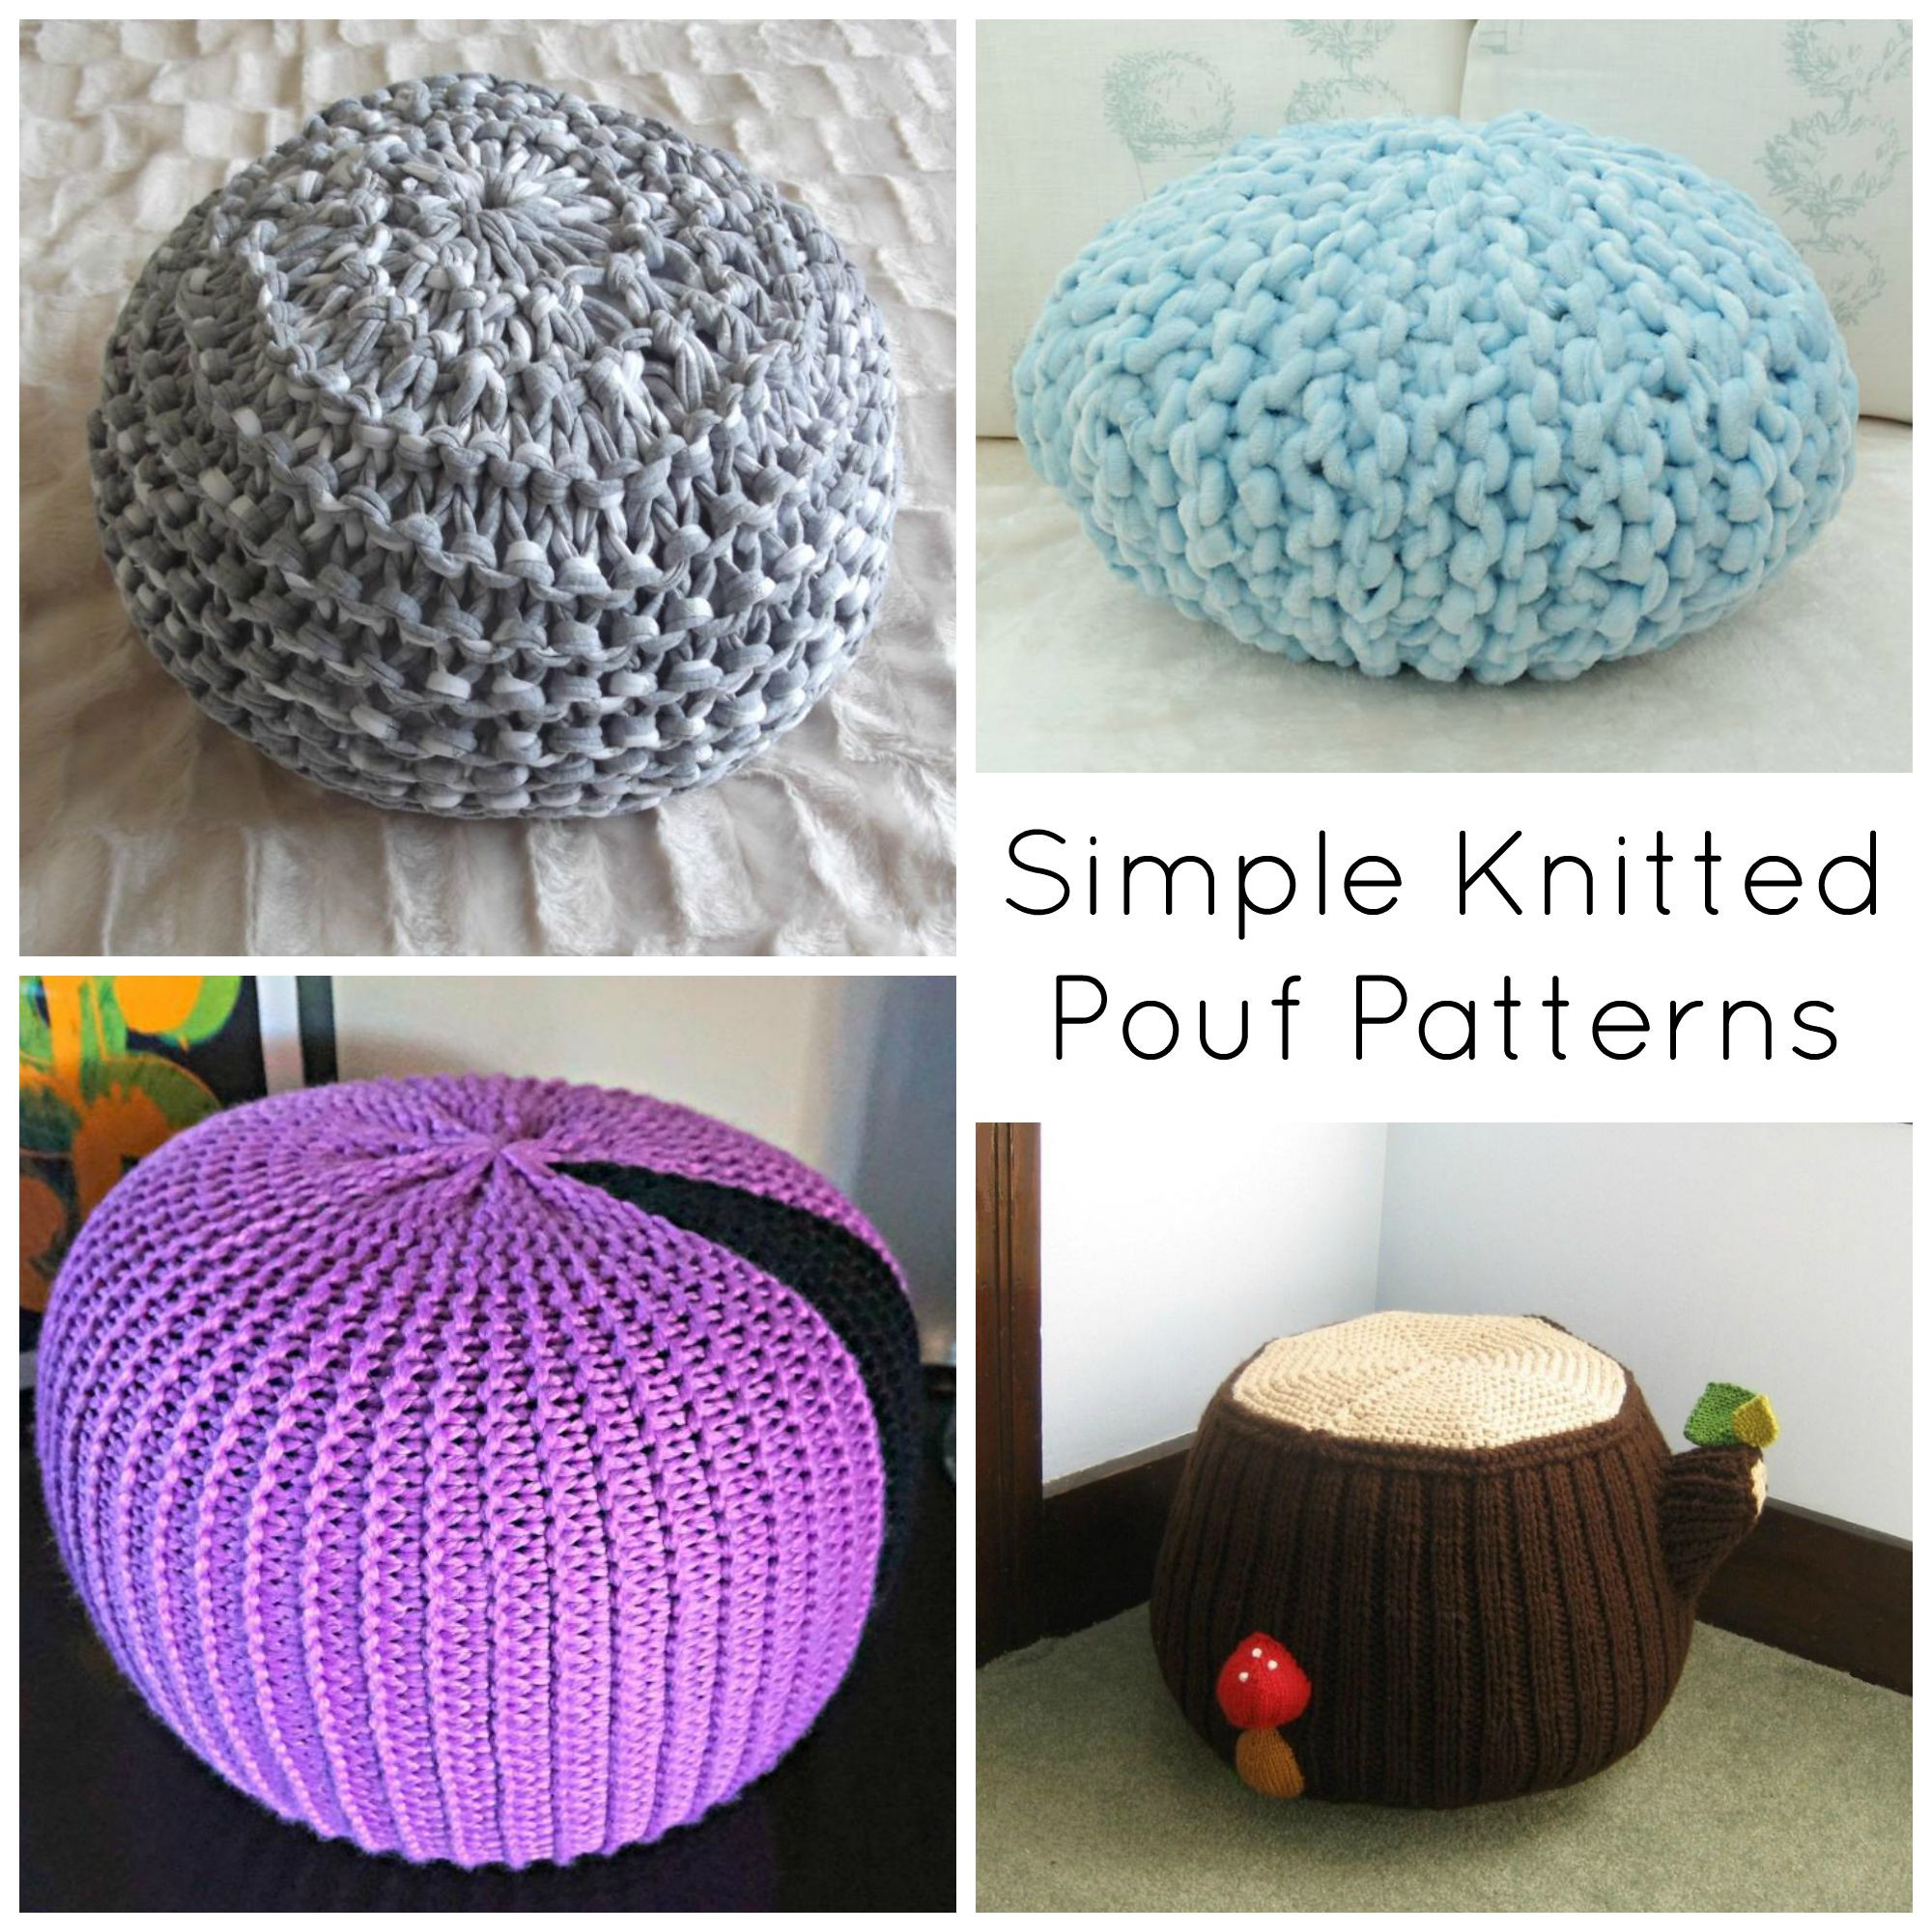 Crochet Pouf Pattern Luxury Knitted Pouf Patterns Craftsy Of Incredible 46 Pictures Crochet Pouf Pattern